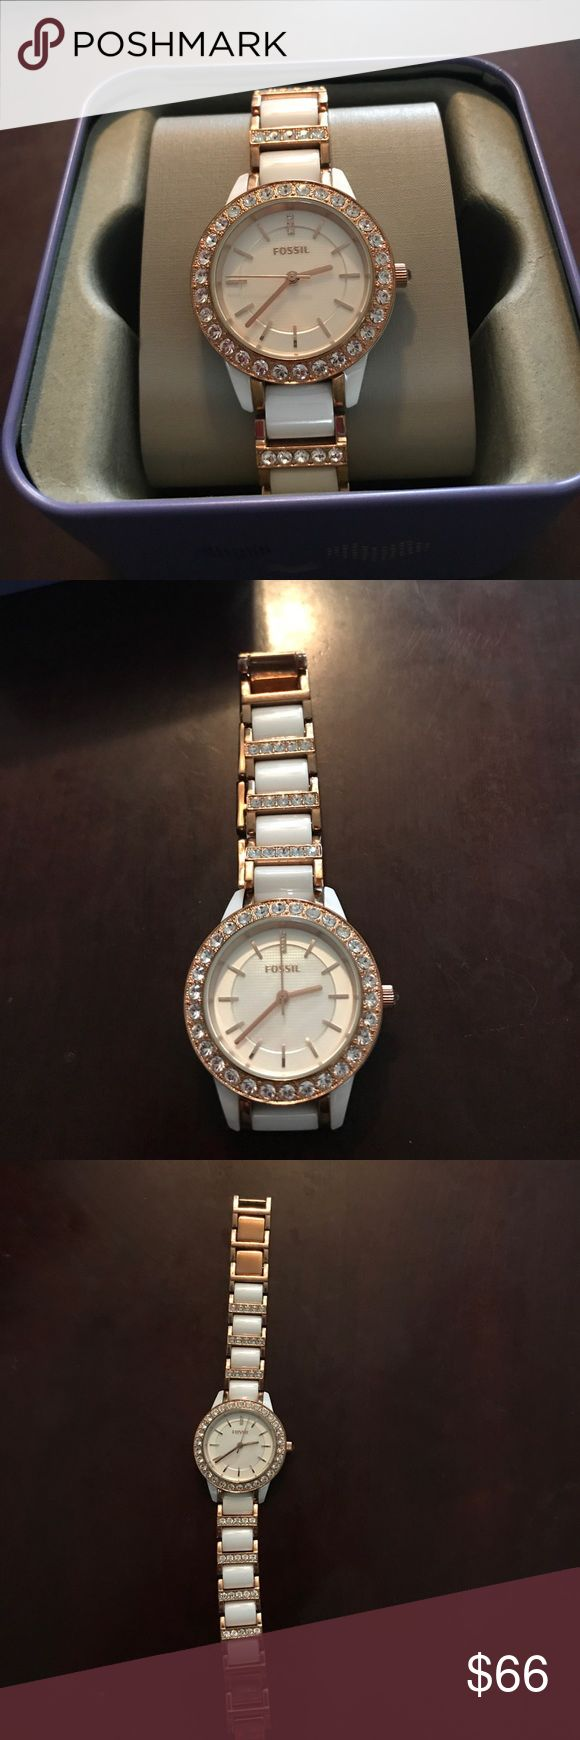 Fossil ceramic and white gold watch Women's Fossil Jesse Ceramic White and Rose tone watch. Preowned, functioning with new Watch battery and in great condition. Fossil watch box included in price. Fossil Jewelry